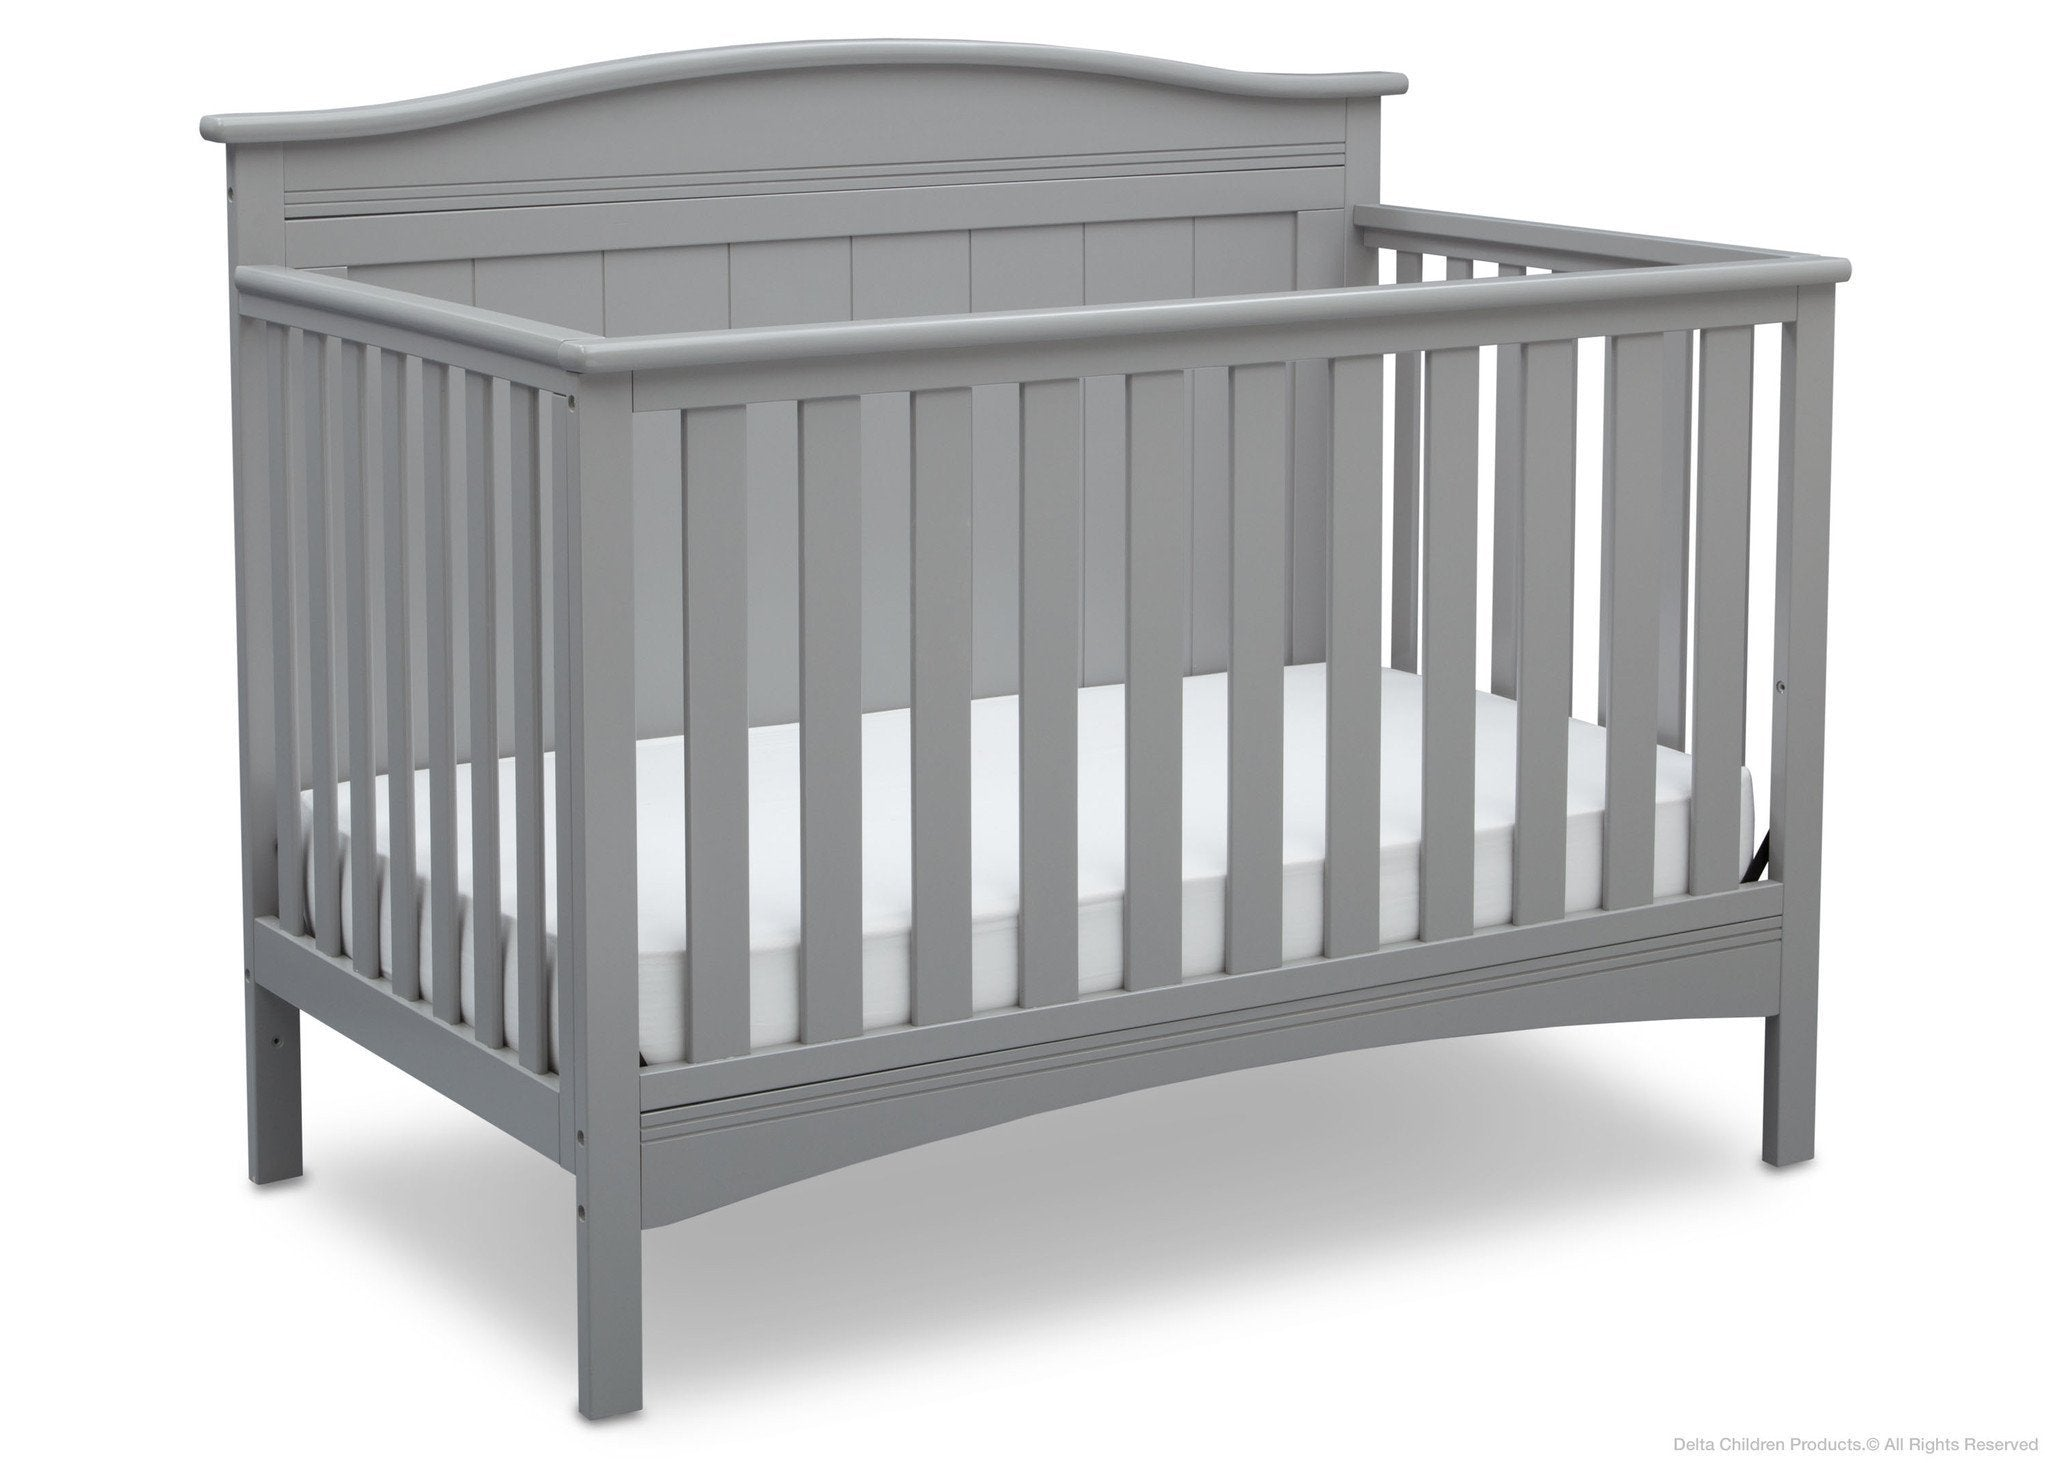 Delta Children Grey (026) Bennett 4-in-1 Crib Side View a3a